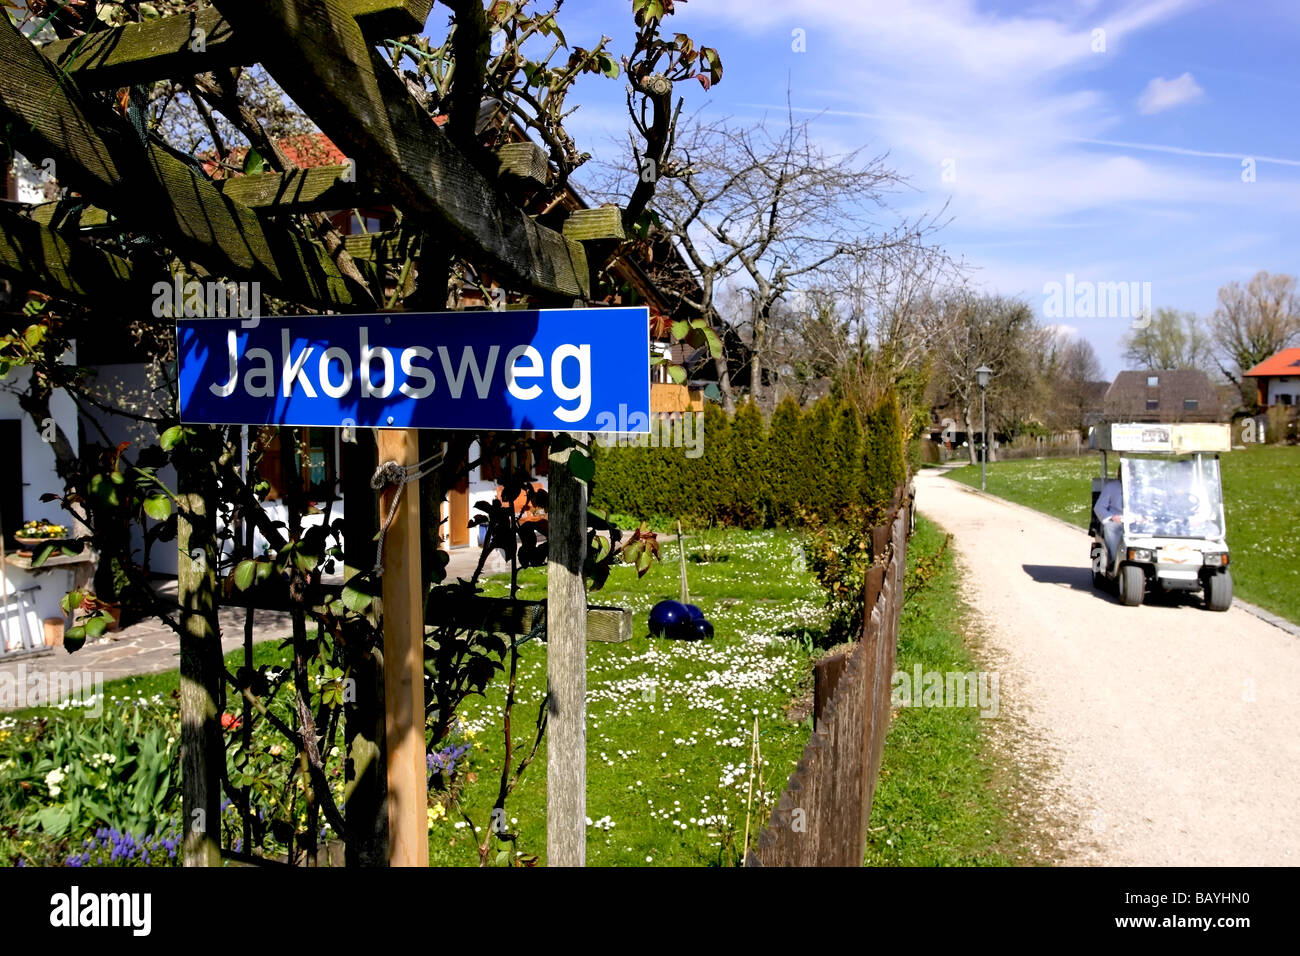 Jacobsweg Street Sign and Electric Goods Delivery Vehicle Fraueninsel Chiemsee Chiemgau Bavaria Germany, Europe - Stock Image